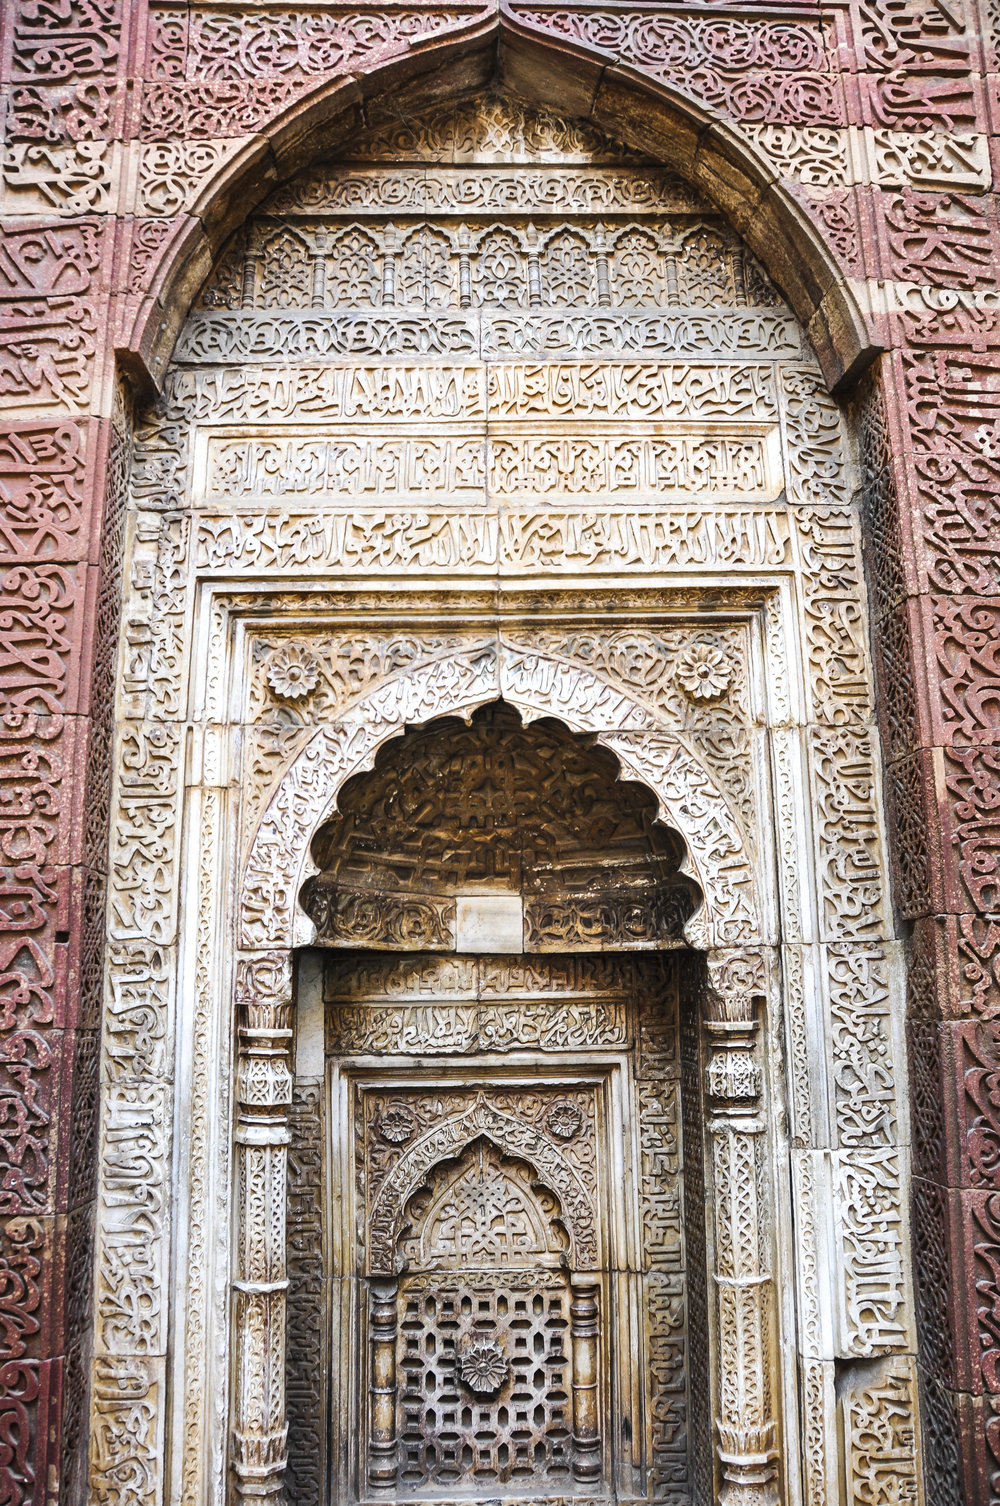 Tomb of Iltutmish (Qutb Minar)